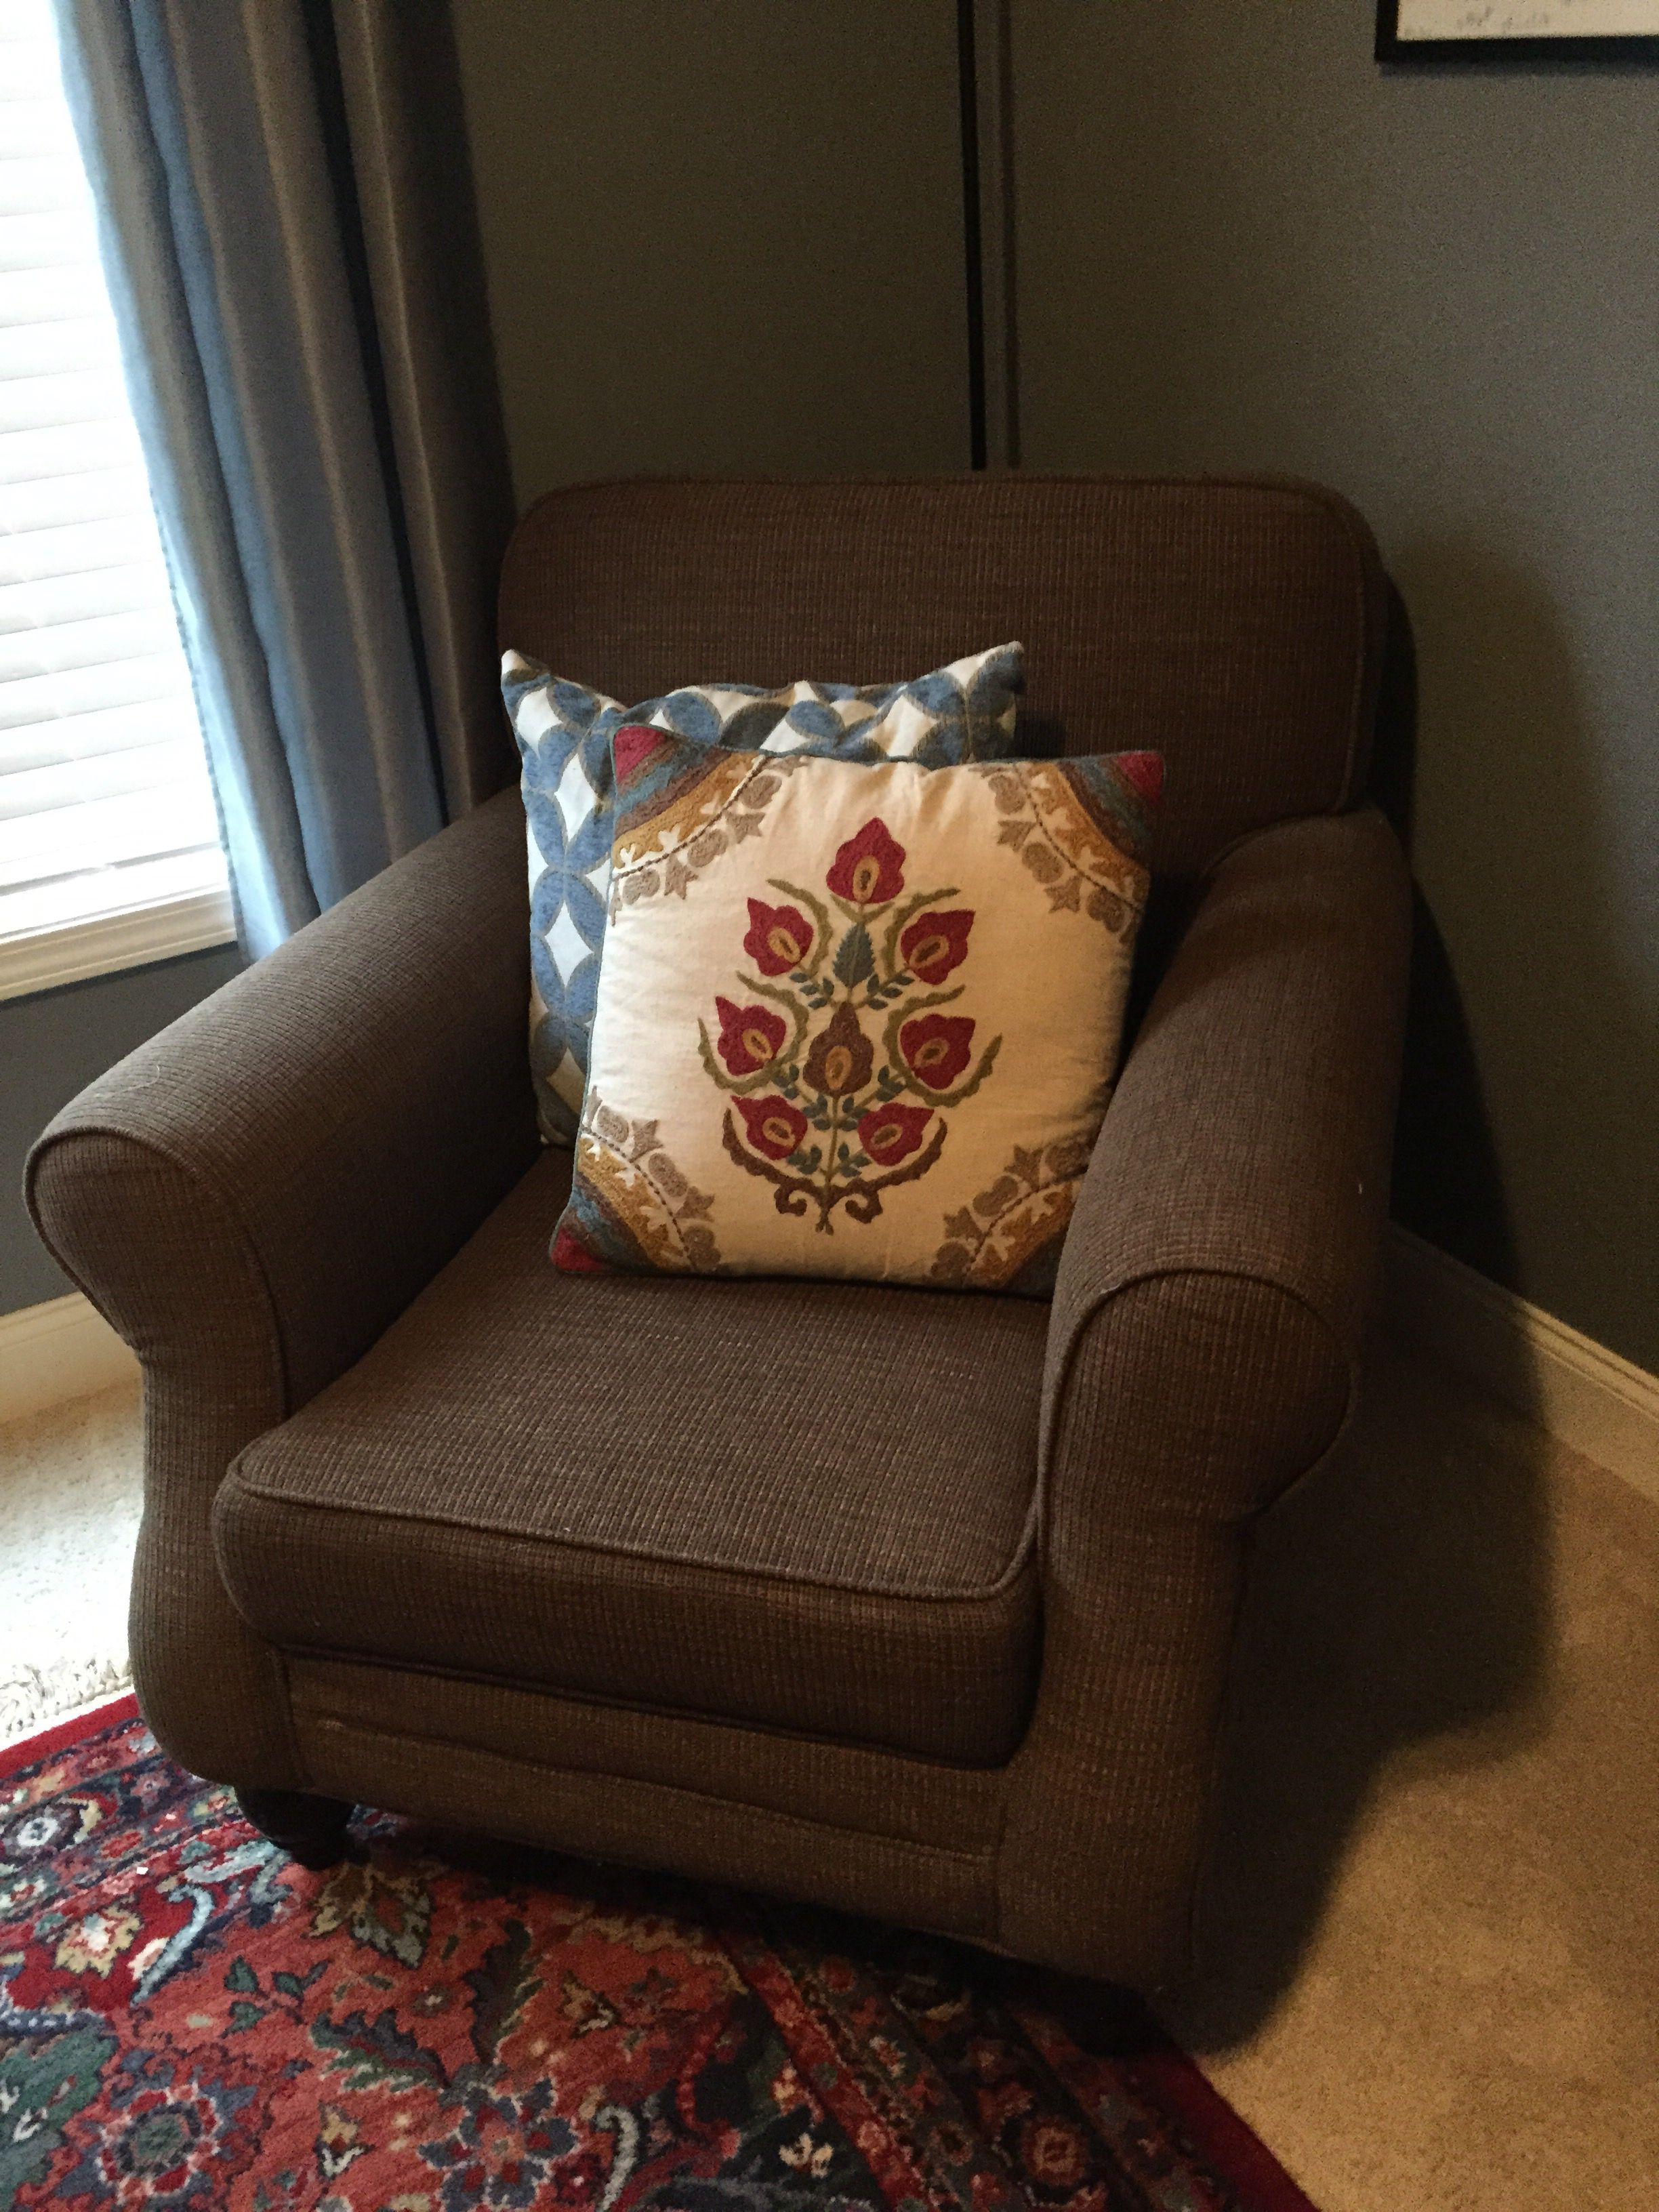 New pillows for an old chair.